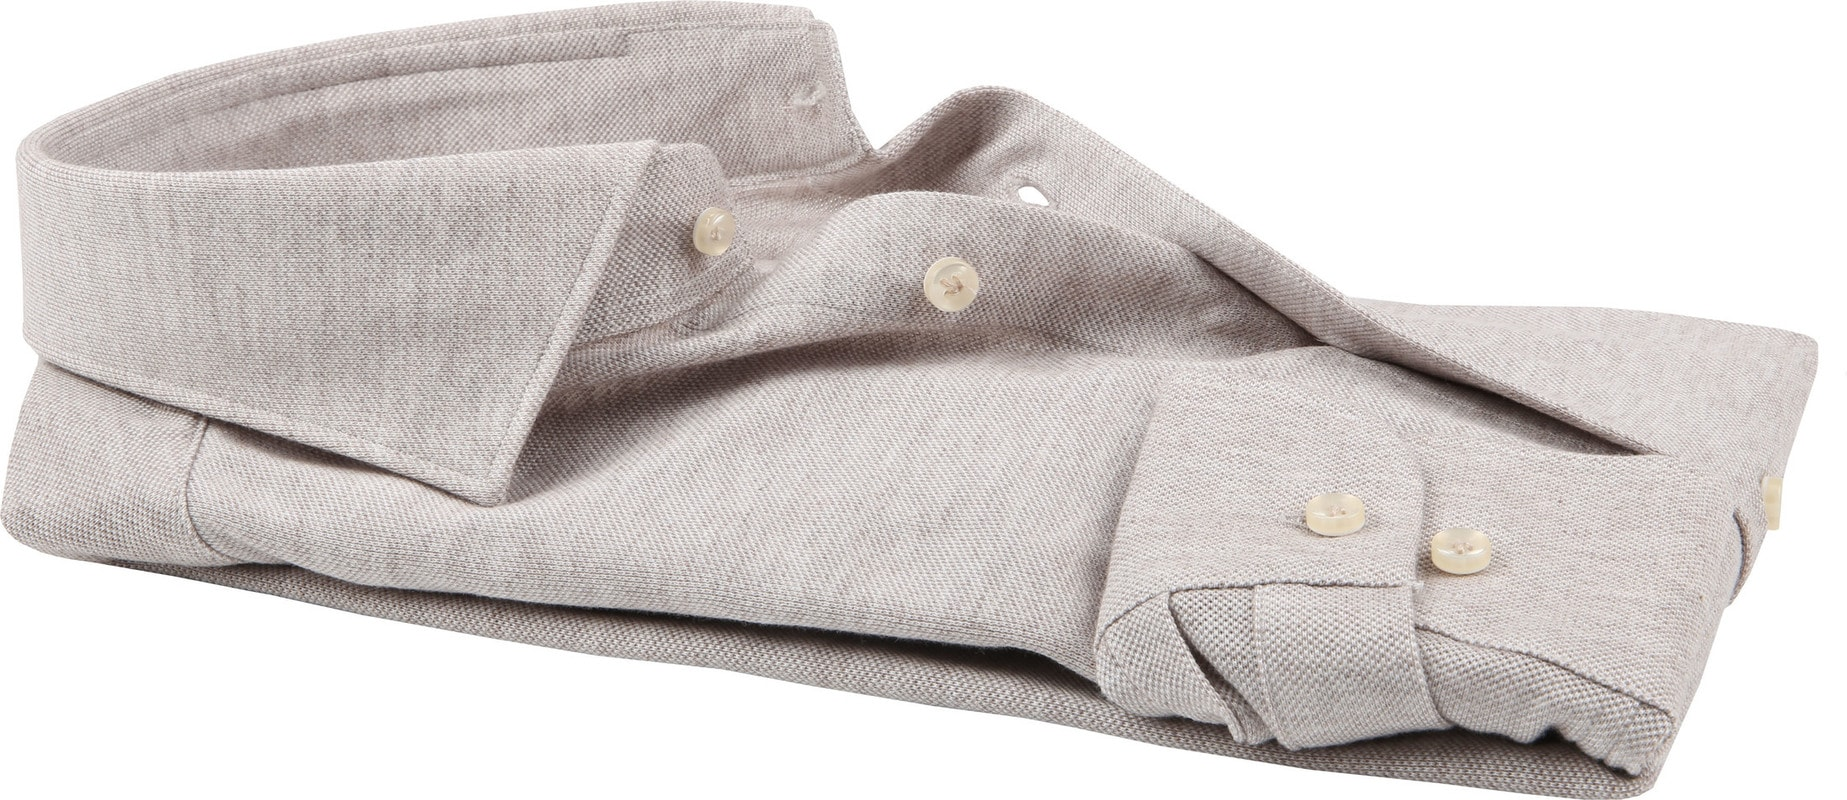 Profuomo Shirt Knitted Beige photo 3